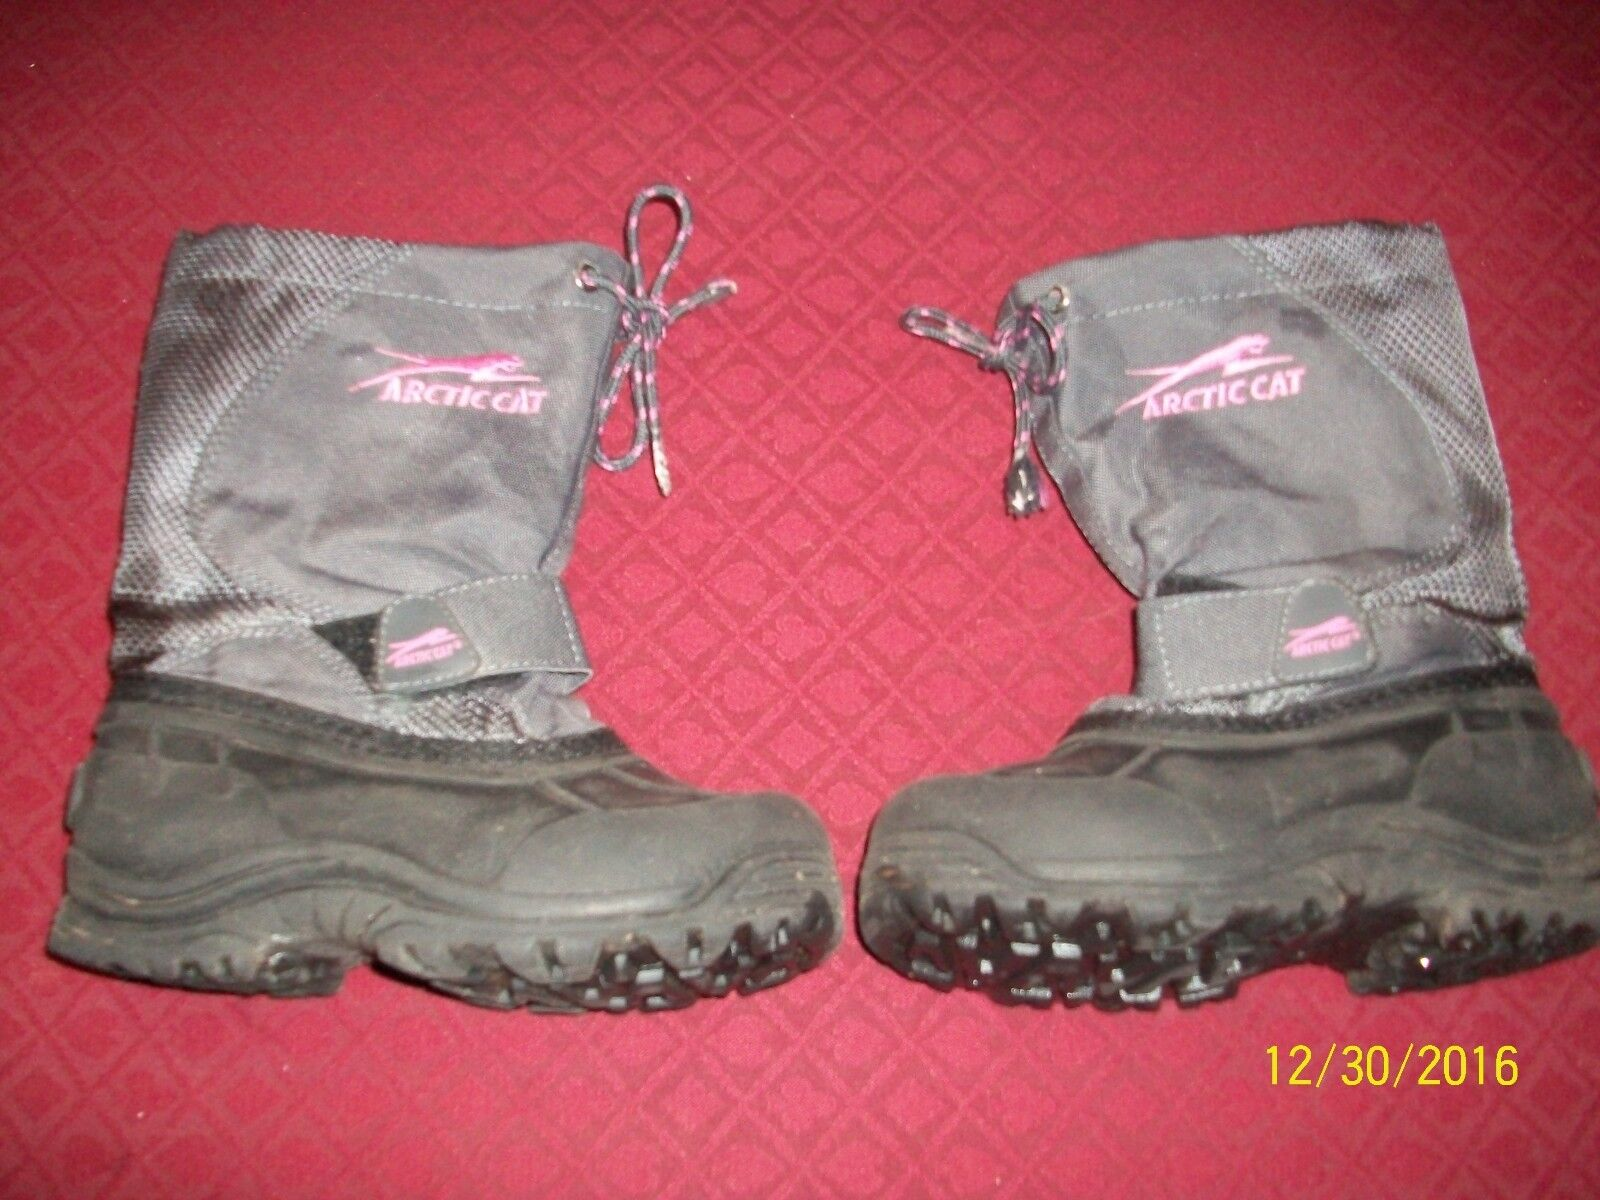 Arctic Cat Girl's Youth Snowmobile Boots Size 12